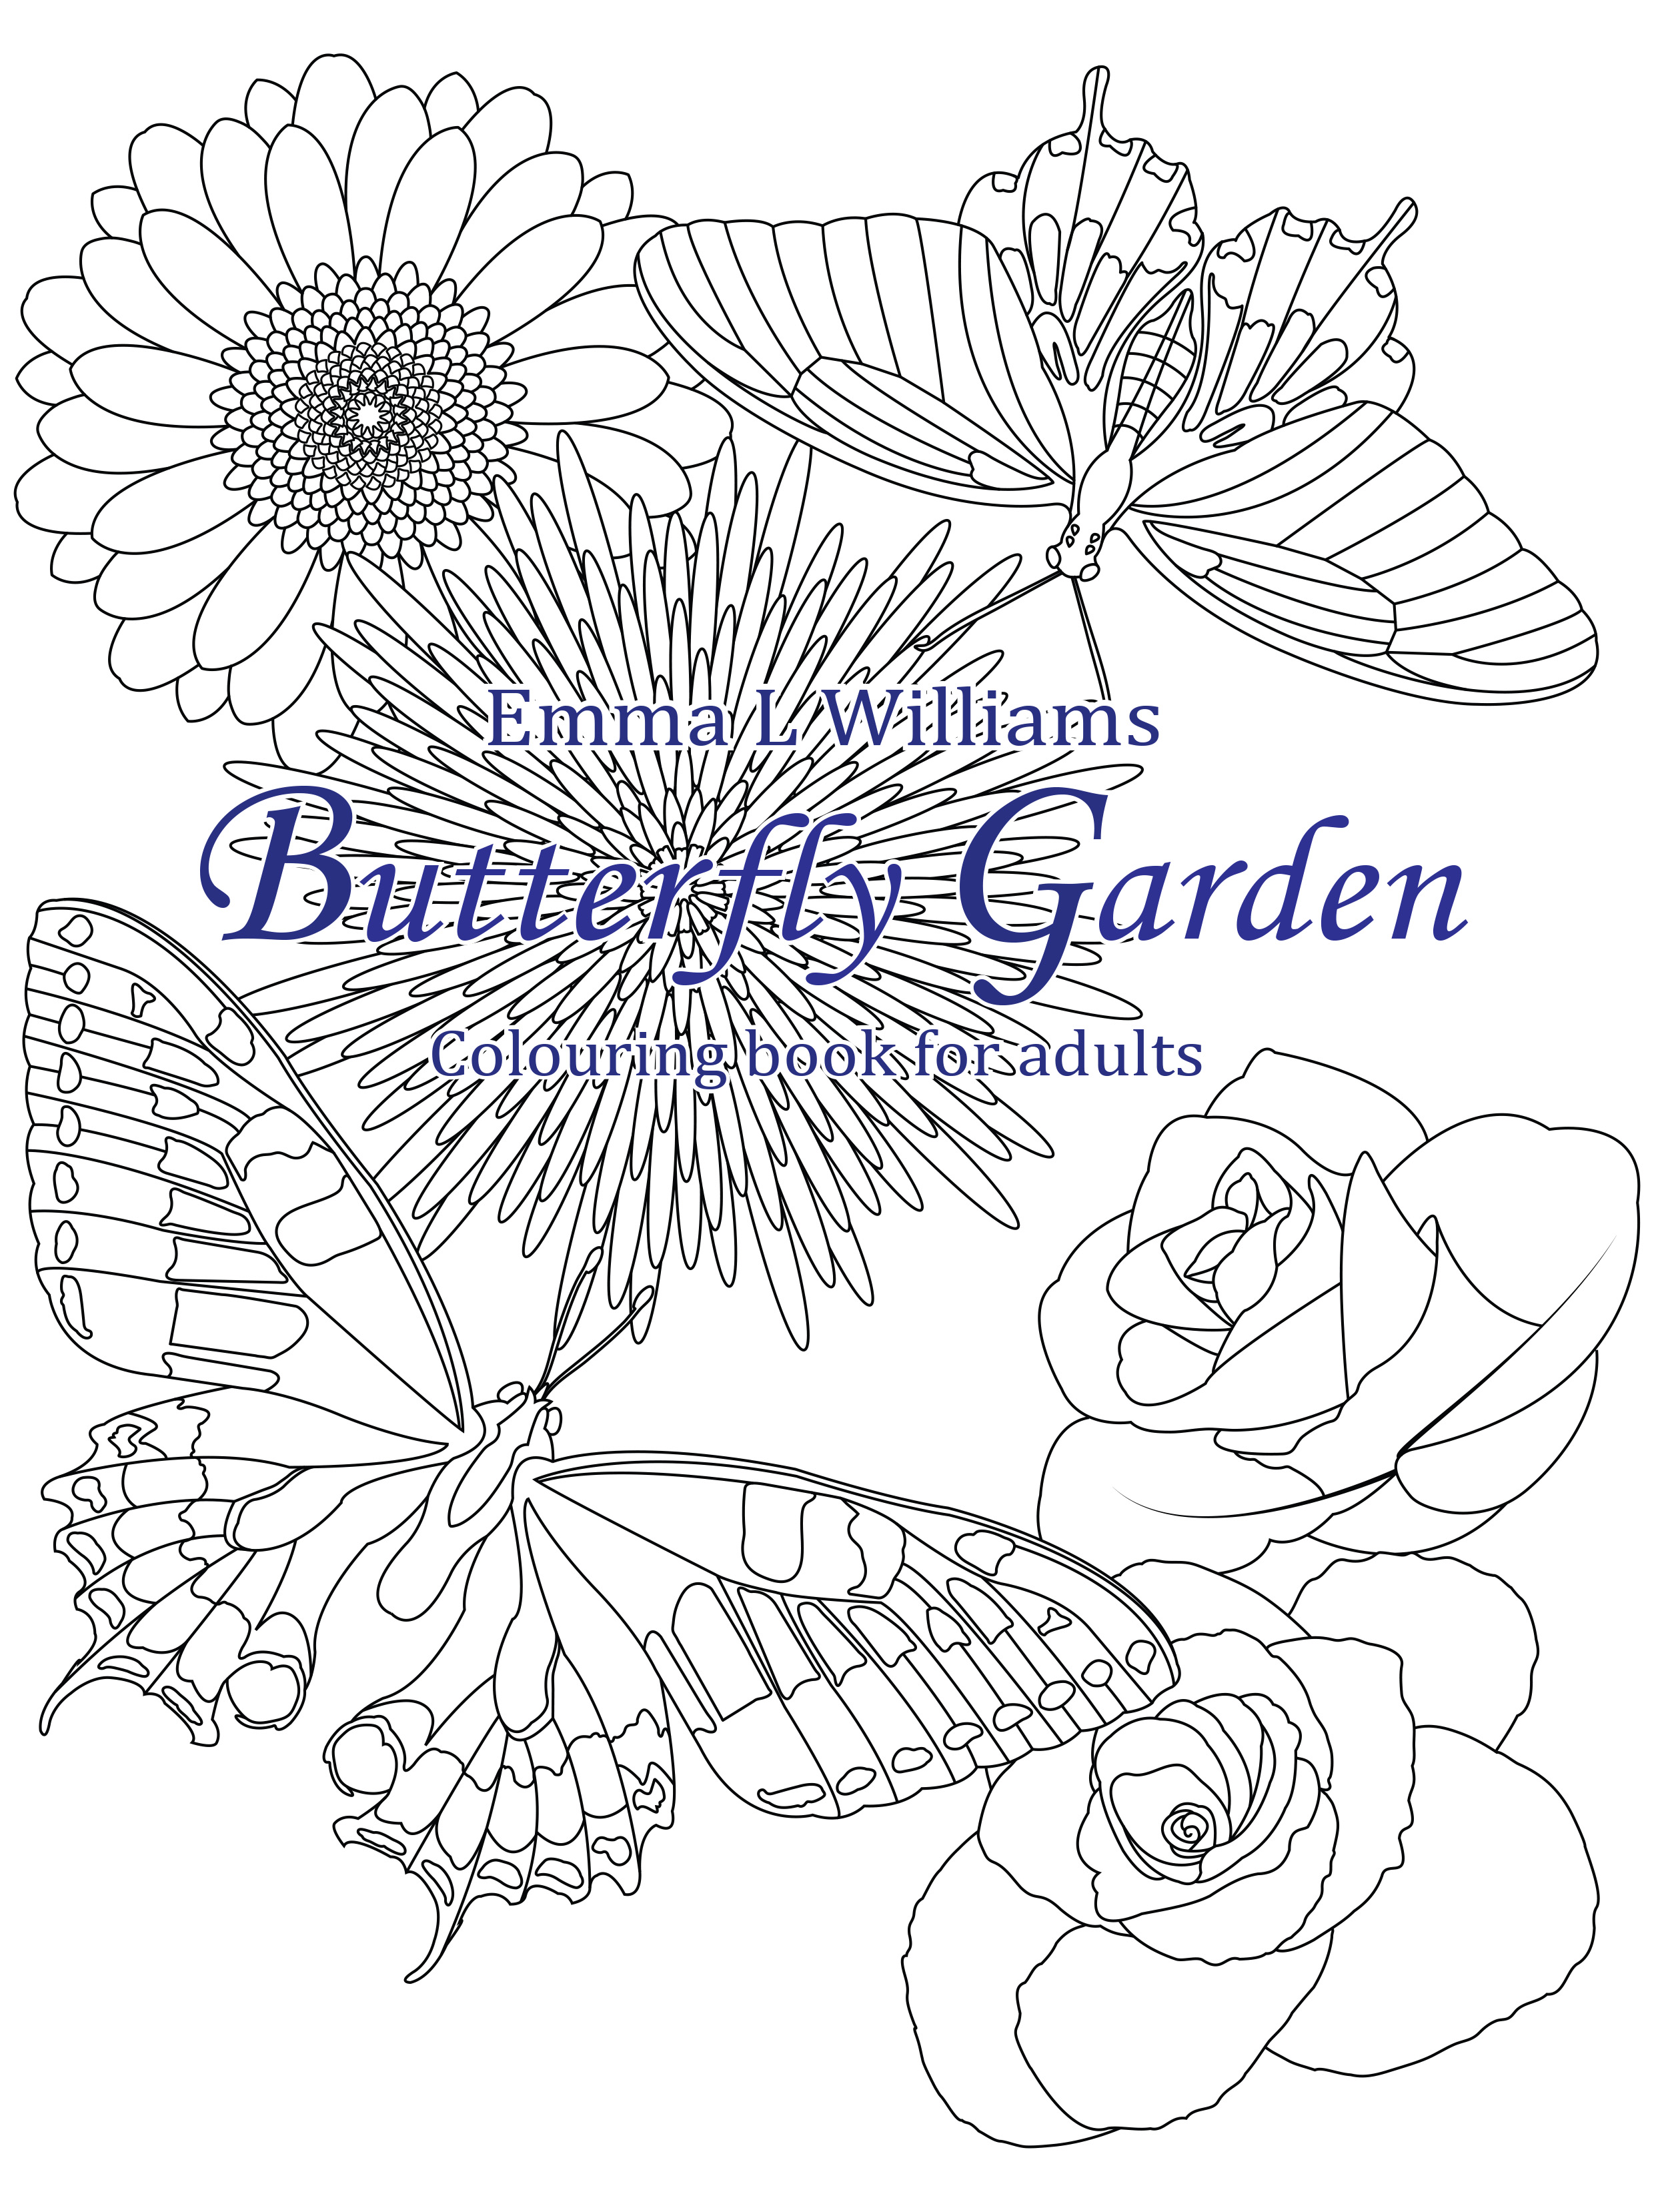 The blog - Coloring Pages for Adults